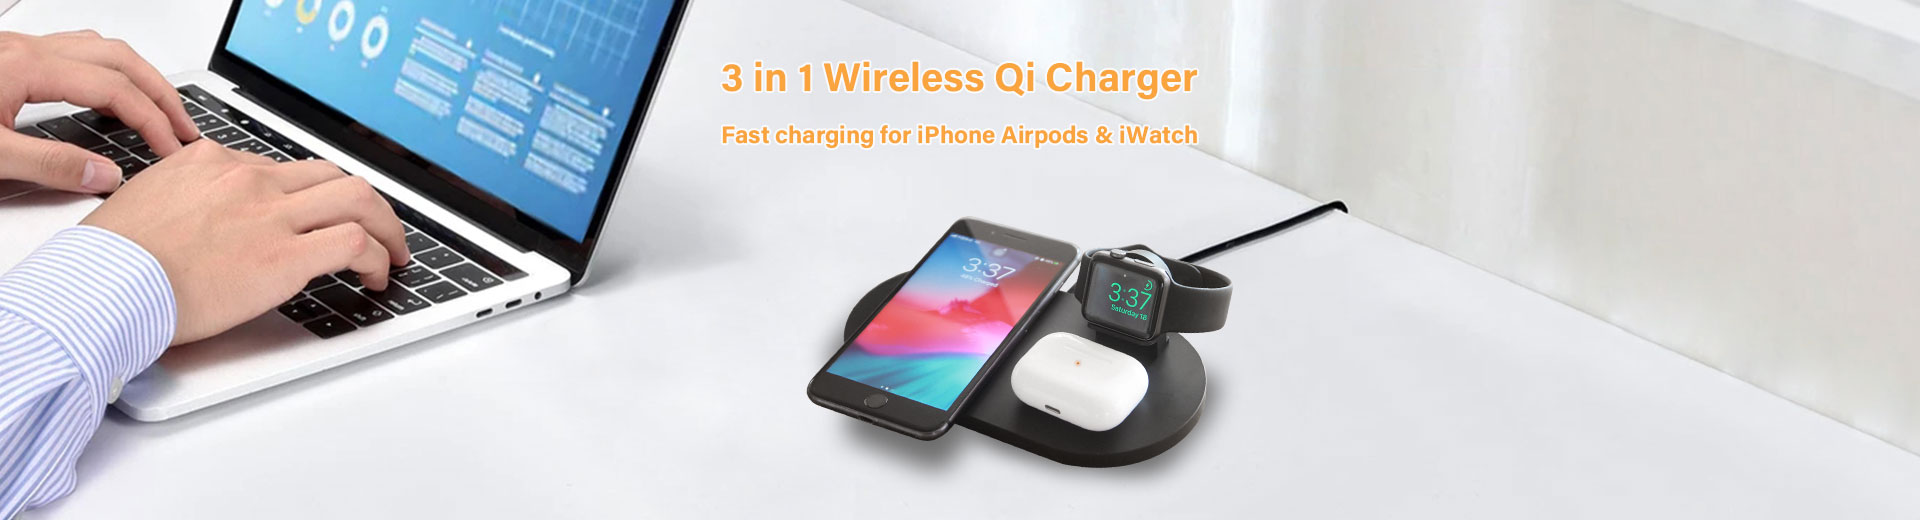 3 in 1 Wireless Qi Charger